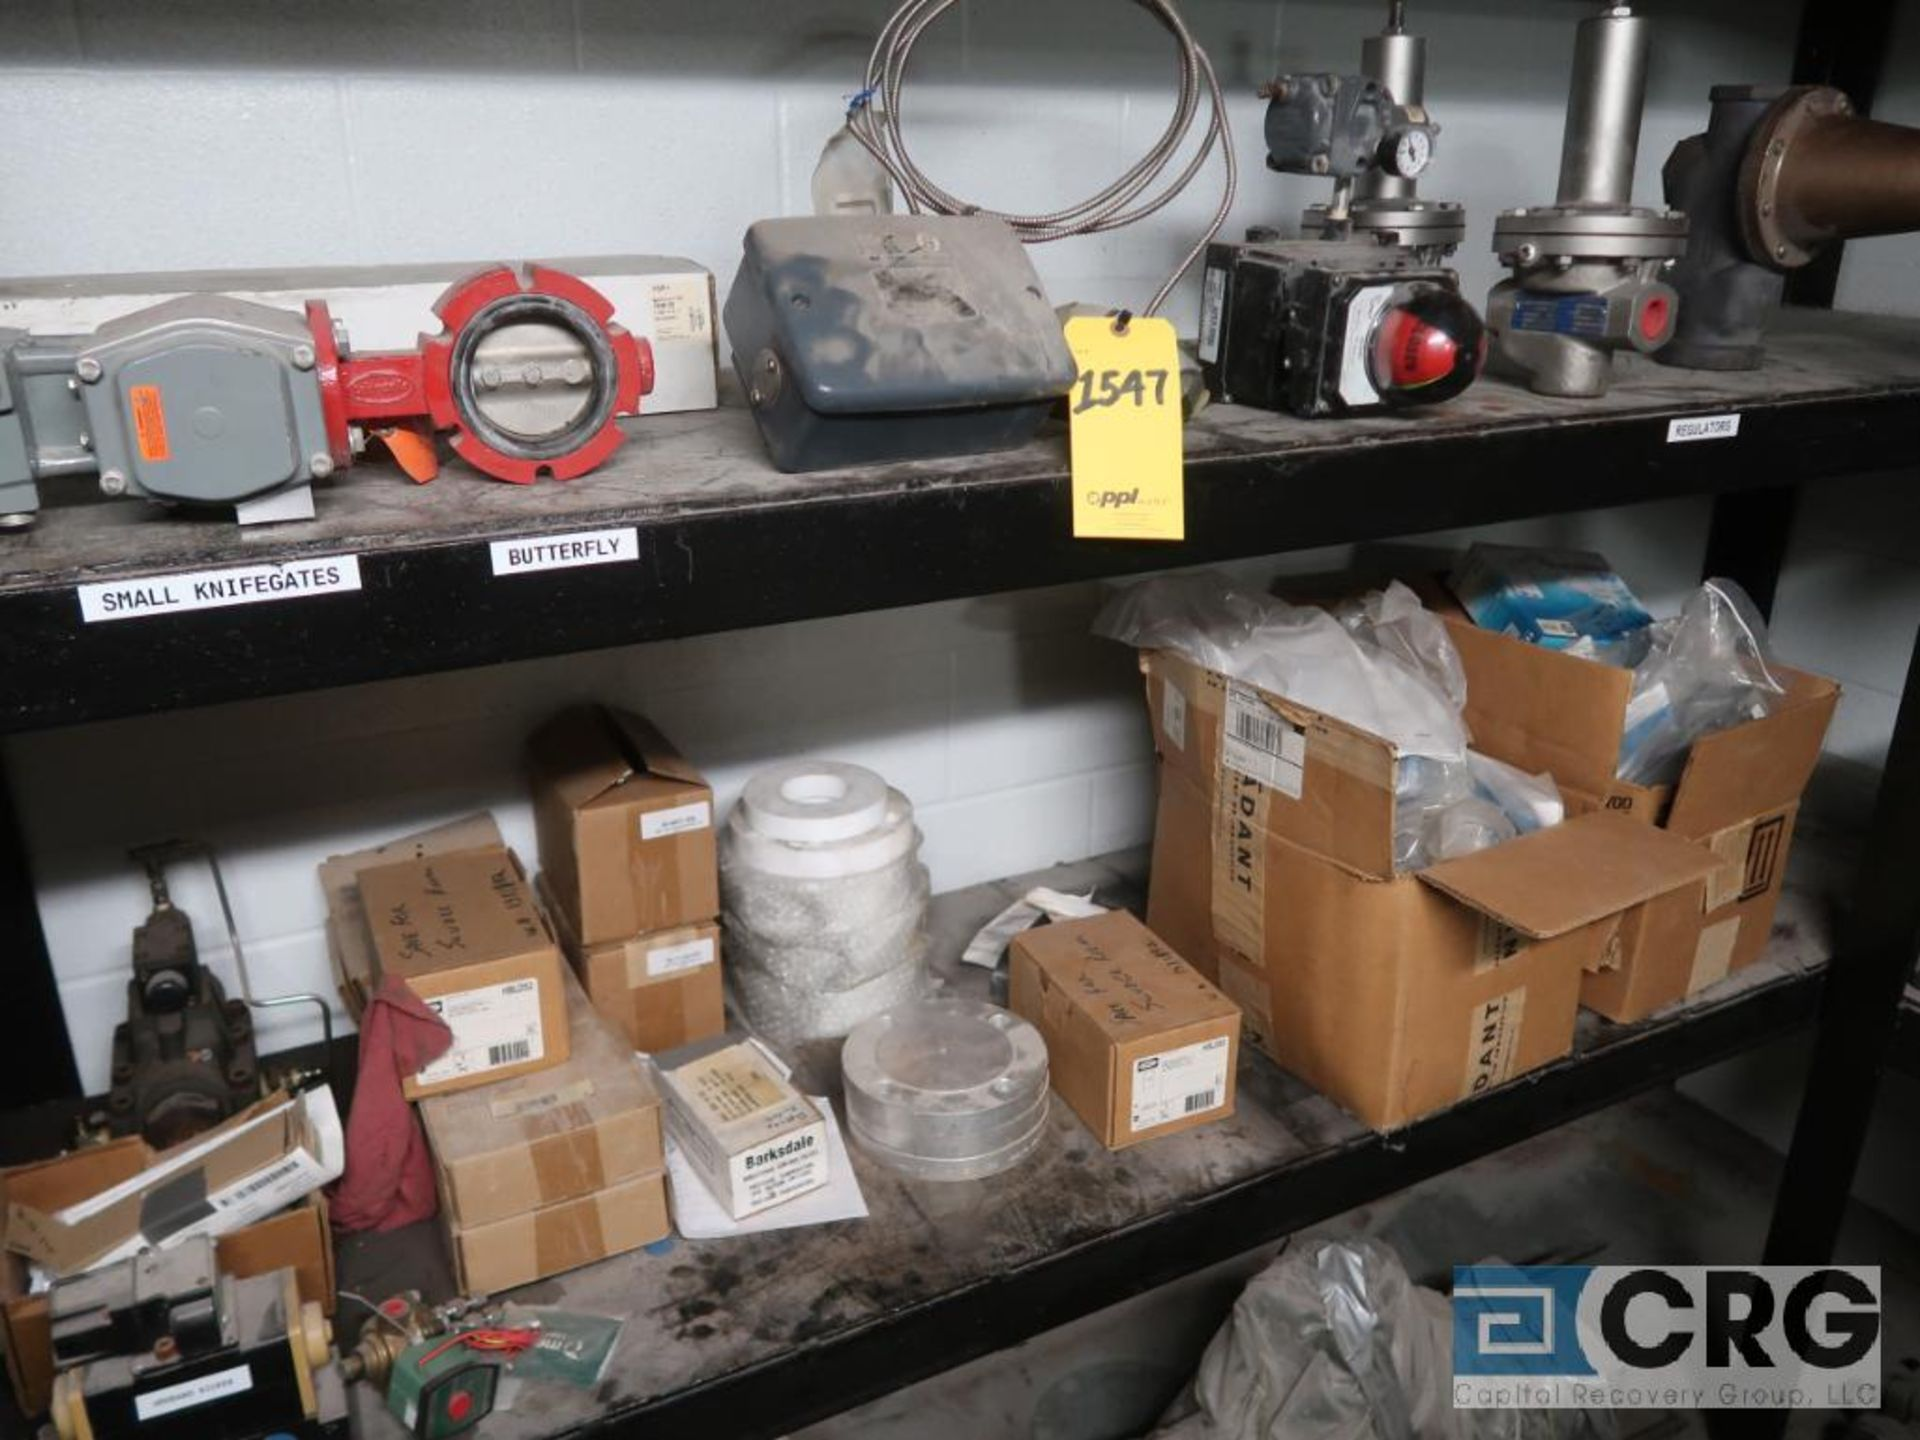 Lot of miscellaneous items including sensors, valves, calibrator, regulators, switches, - Image 2 of 5